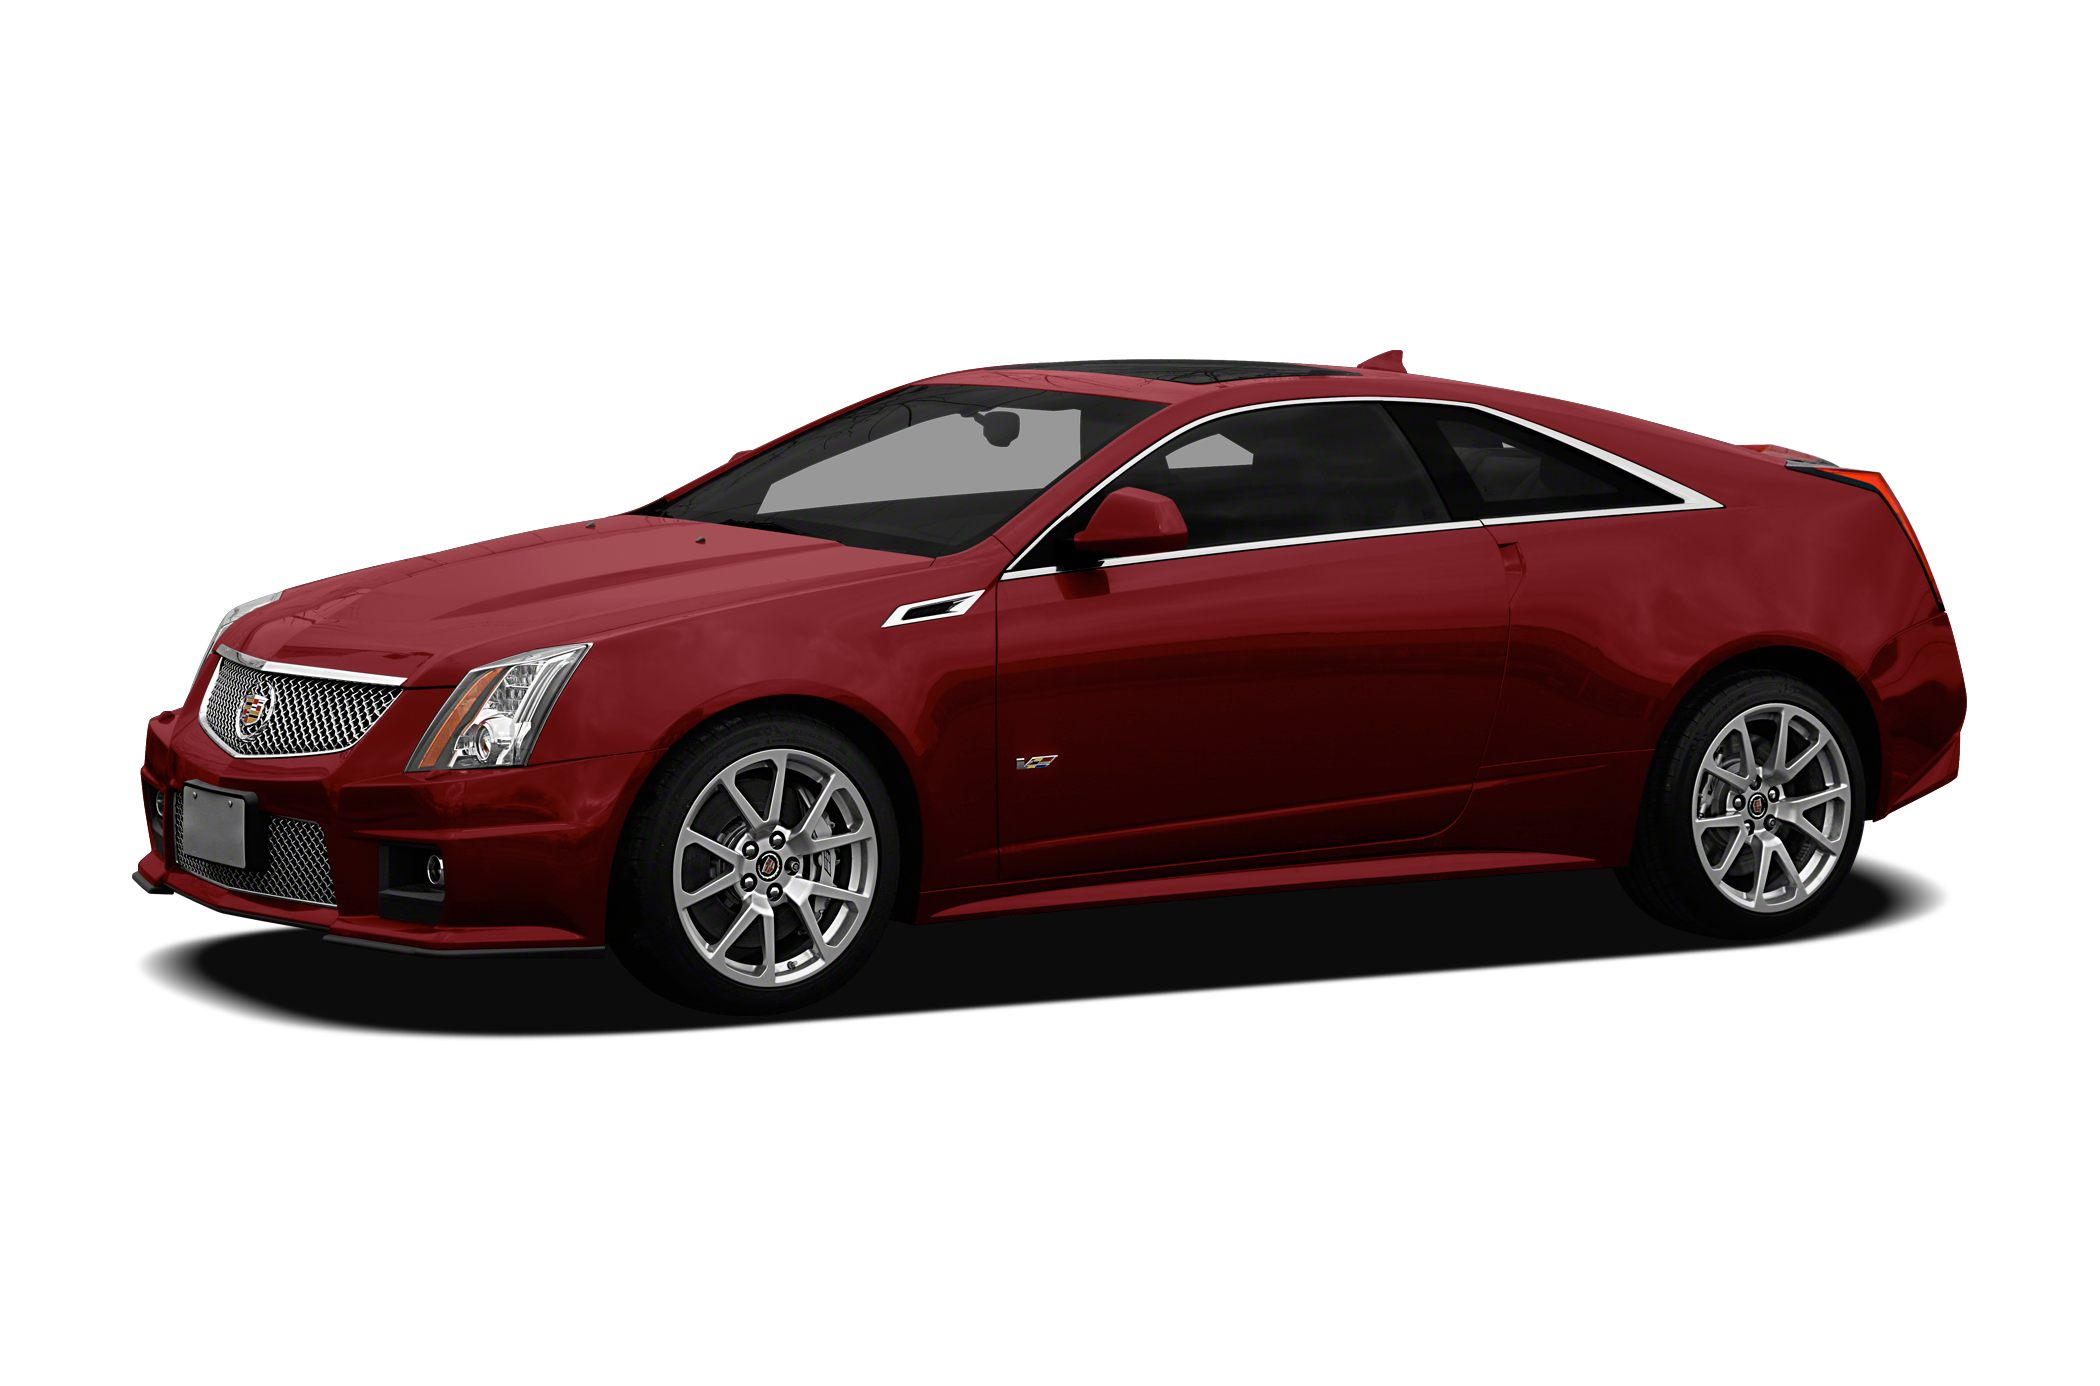 2012 Cadillac CTS V Sedan for sale in Santa Clara for $42,981 with 31,914 miles.